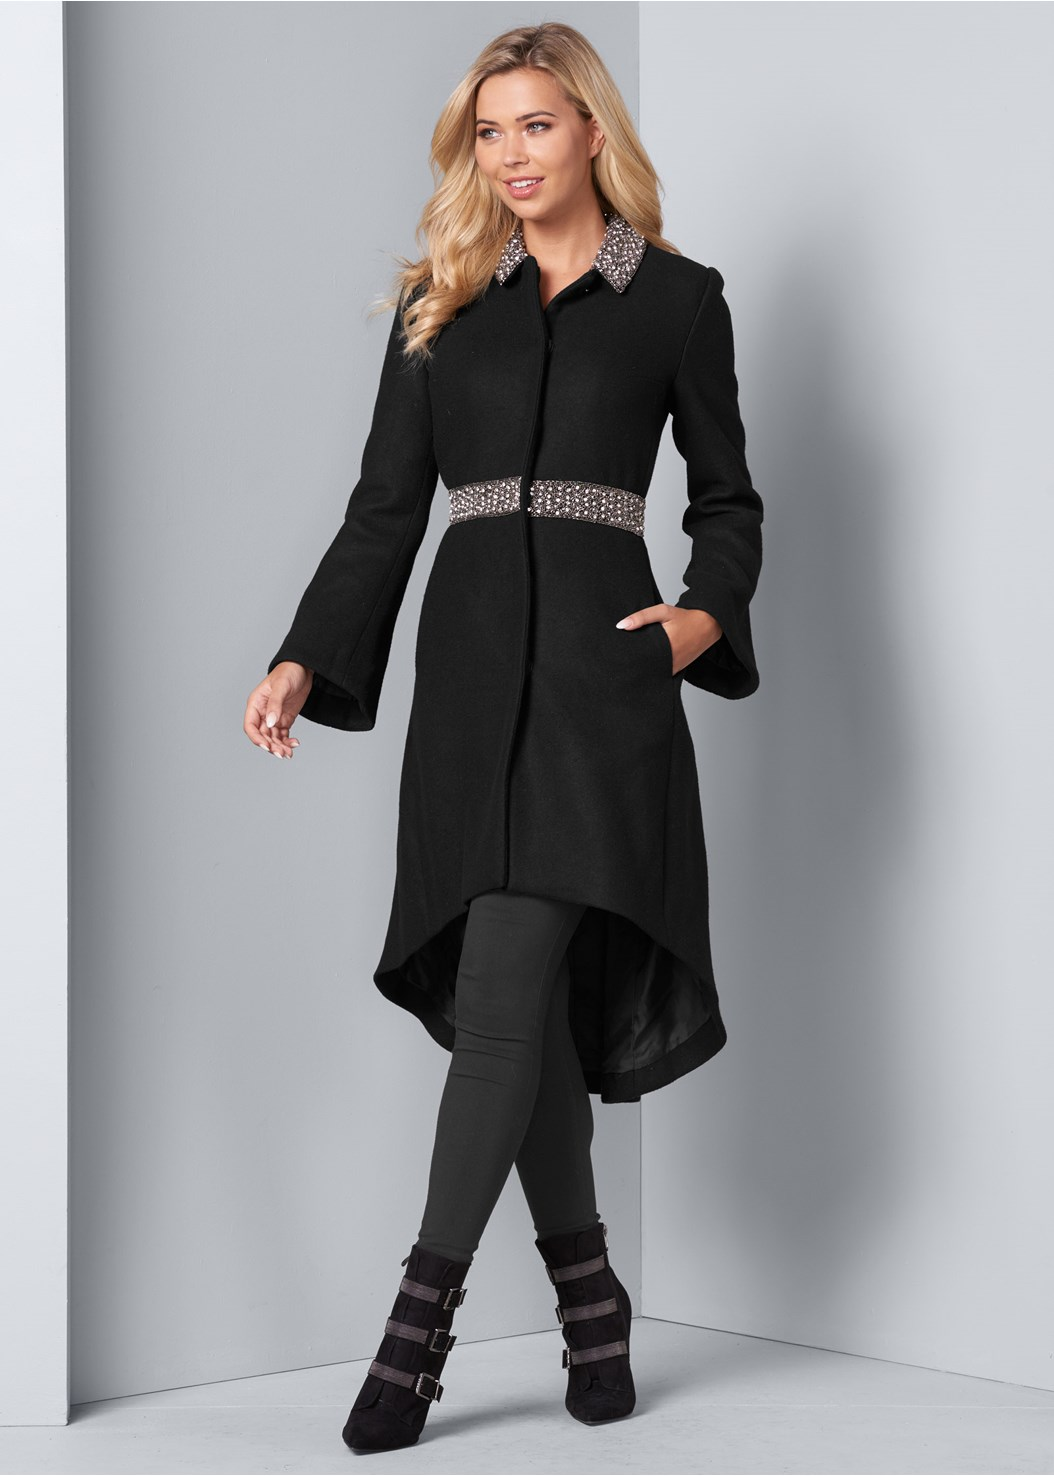 Embellished High Low Coat,Mid Rise Slimming Stretch Jeggings